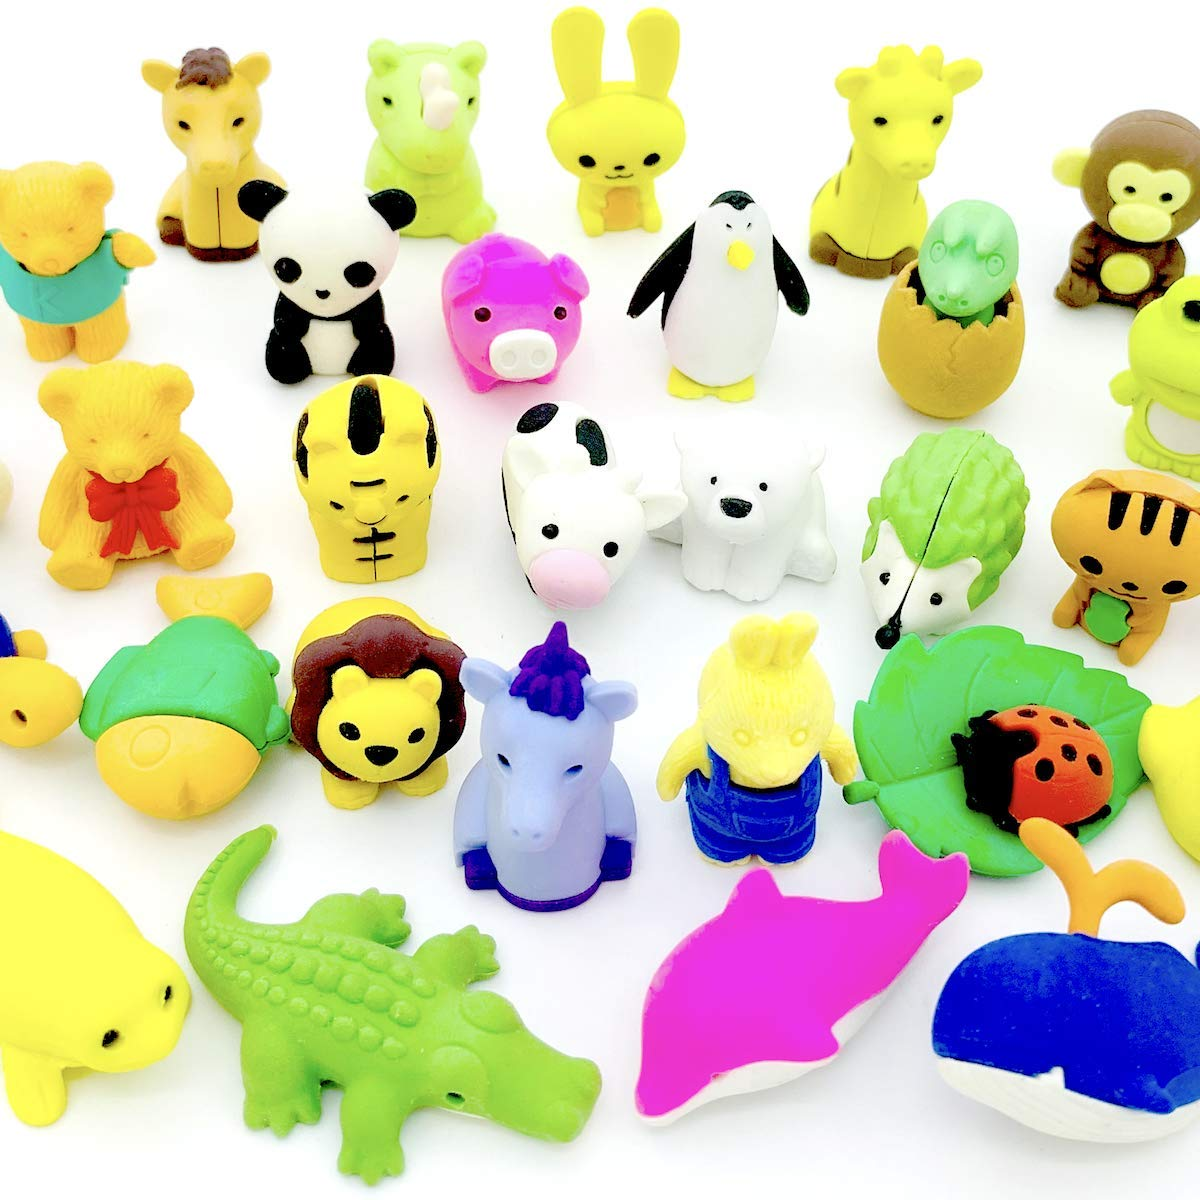 OHill Pack of 32 Animal Erasers Bulk Kids Pencil Erasers Puzzle Erasers Mini Novelty Erasers for Classroom Rewards, Party Favors, Games Prizes, Carnivals Gift and School Supplies